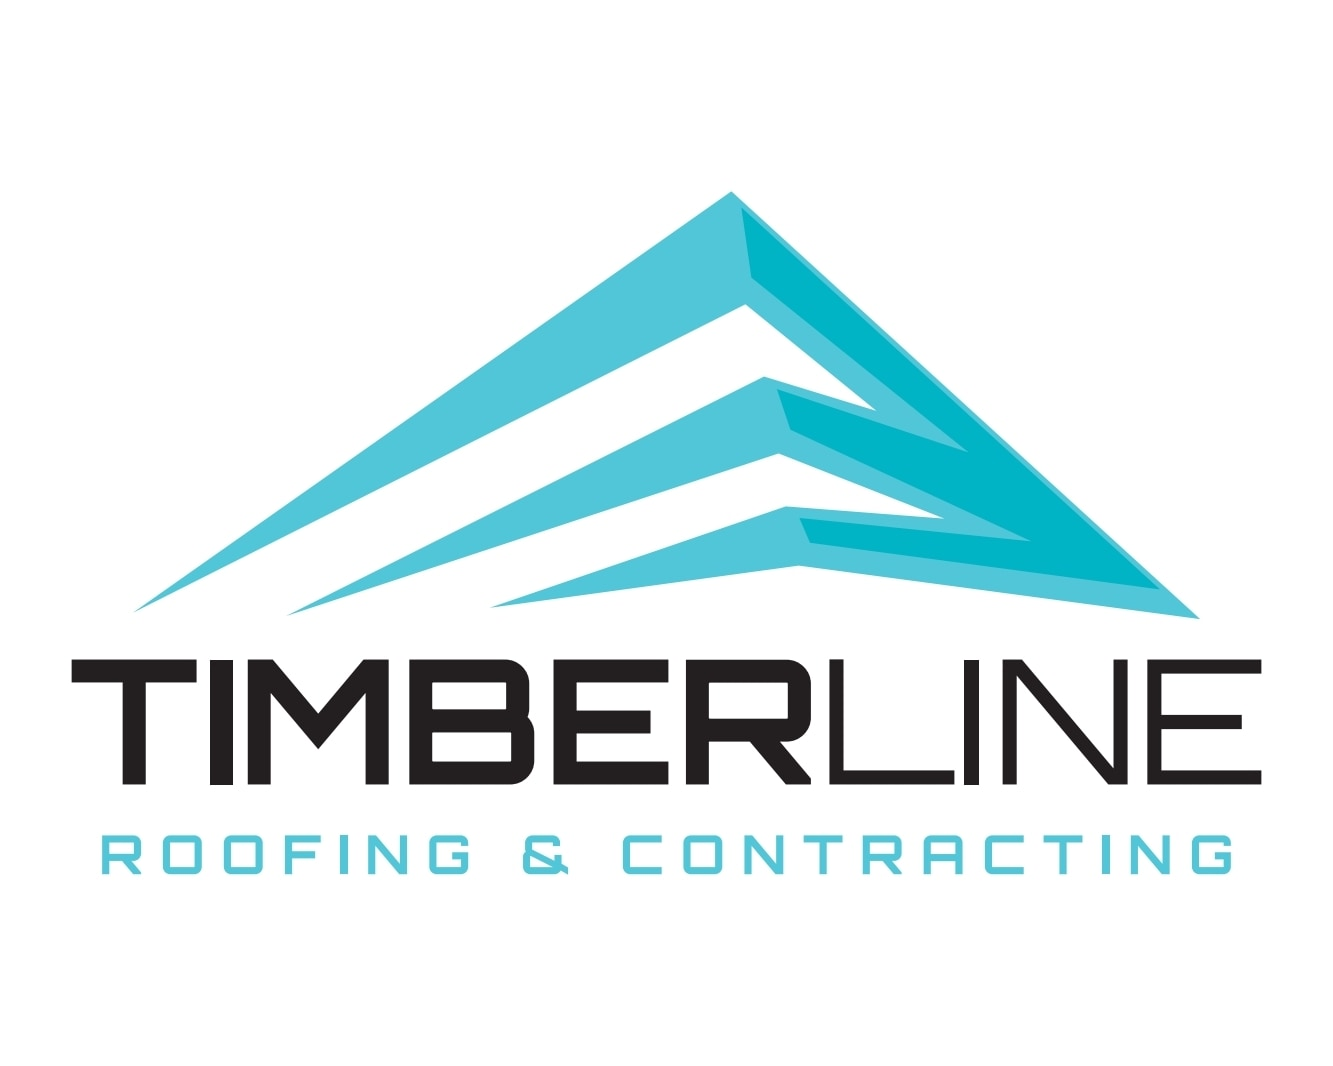 TIMBERLINE ROOFING & CONTRACTING INC